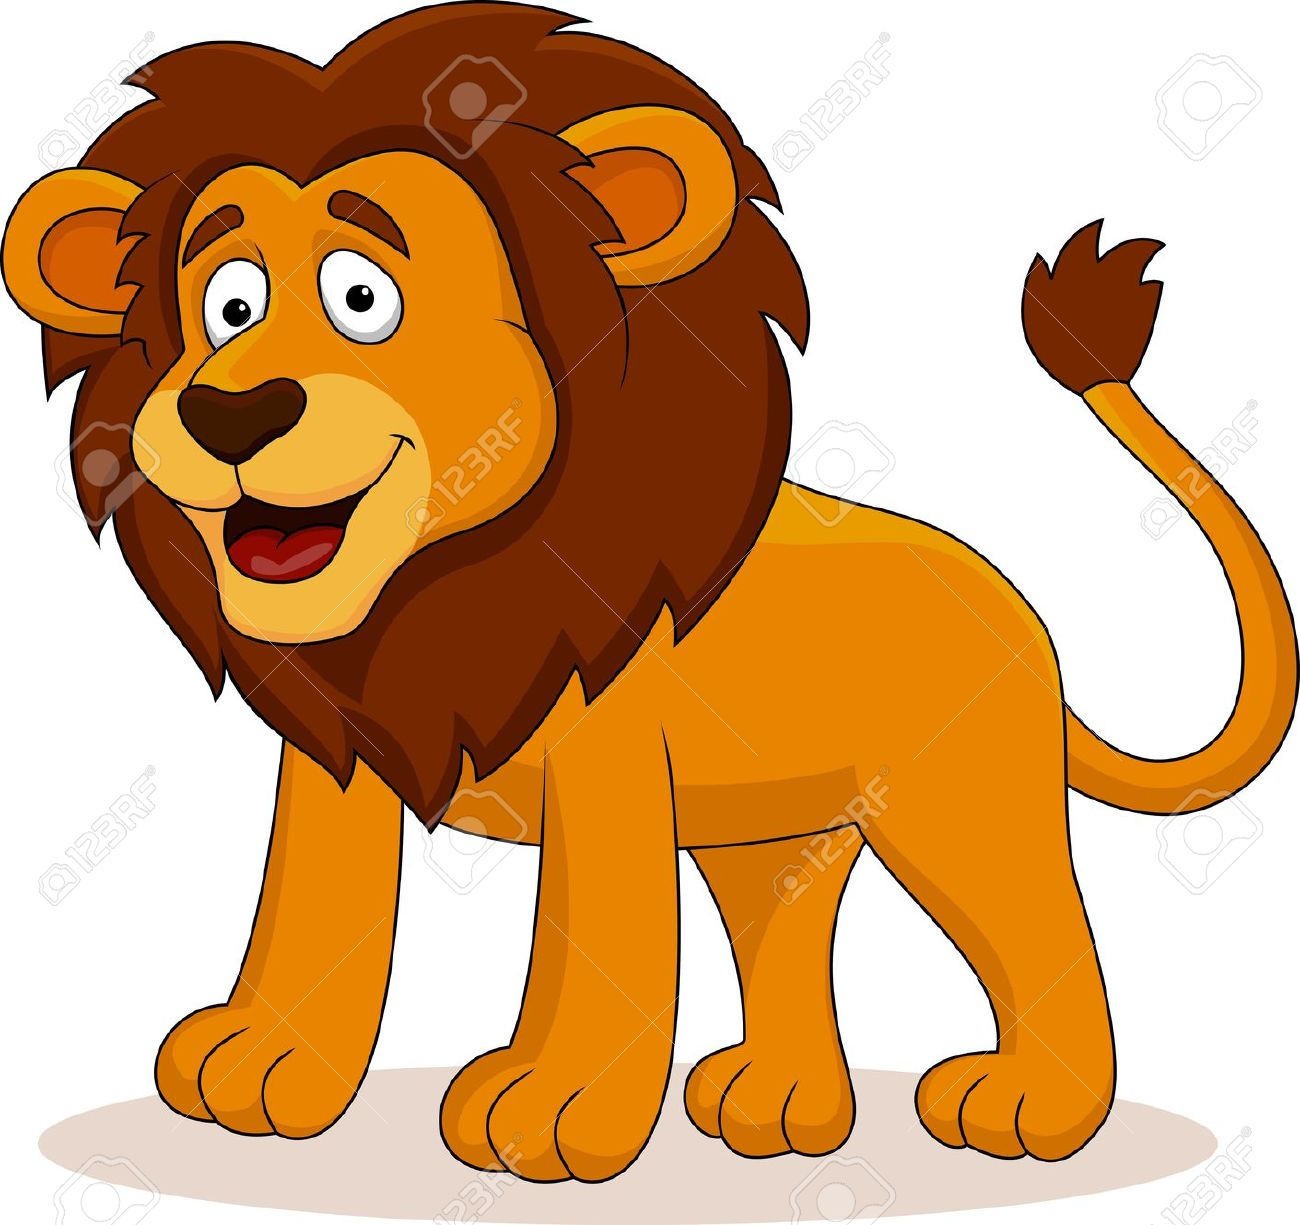 Funny lion clipart.